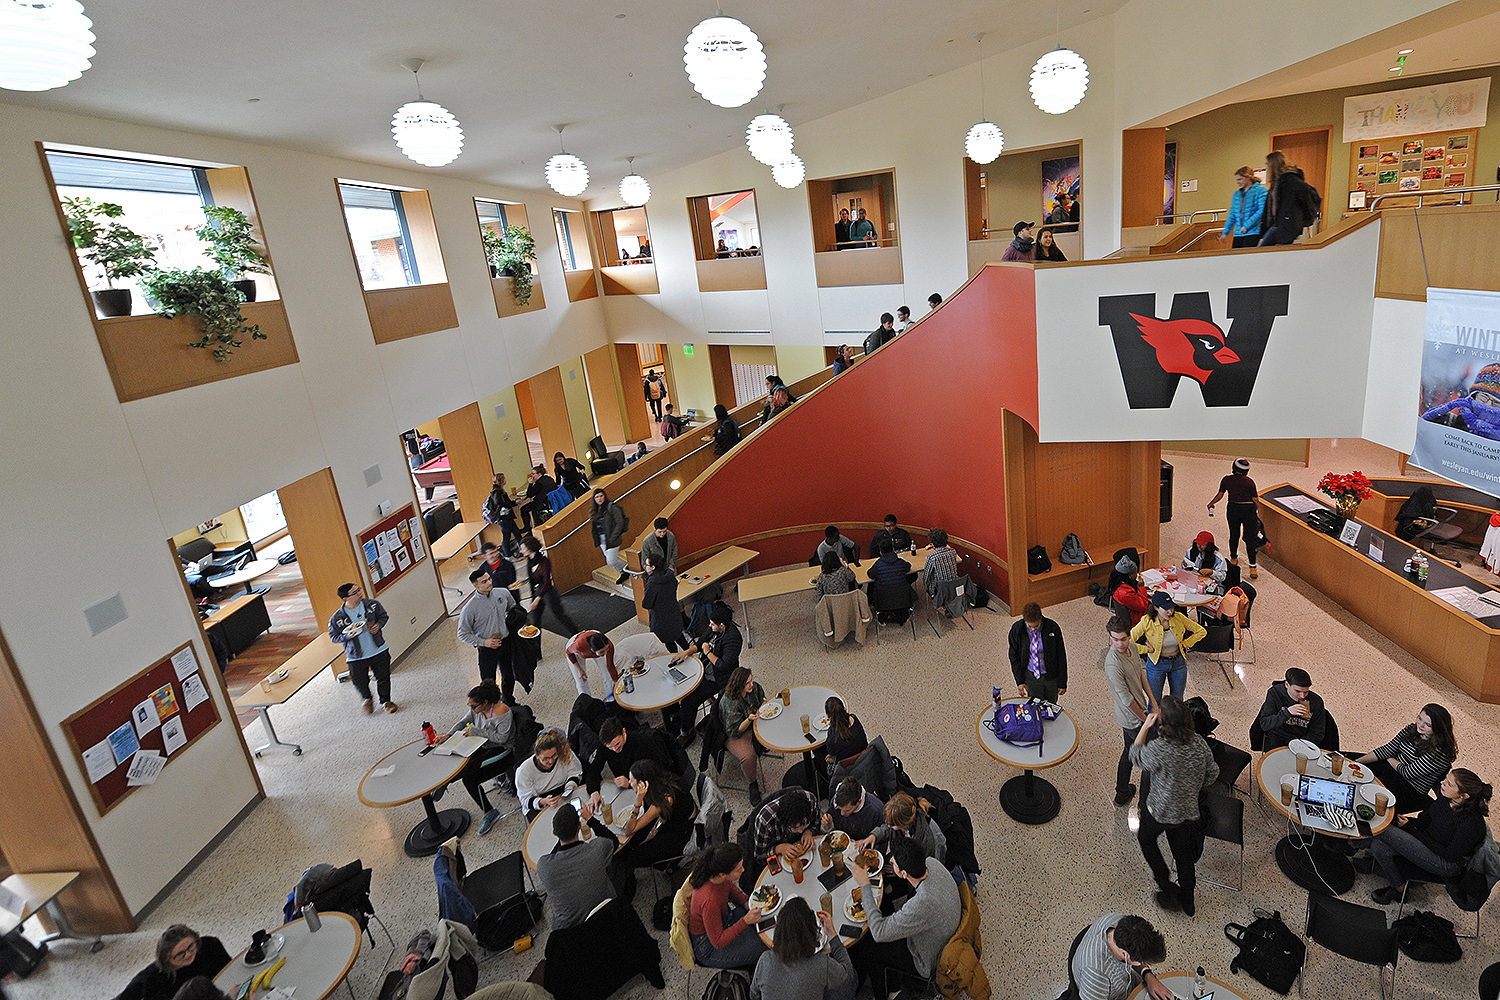 On Jan. 26, students flocked to Usdan University Center to dine and mingle with friends.